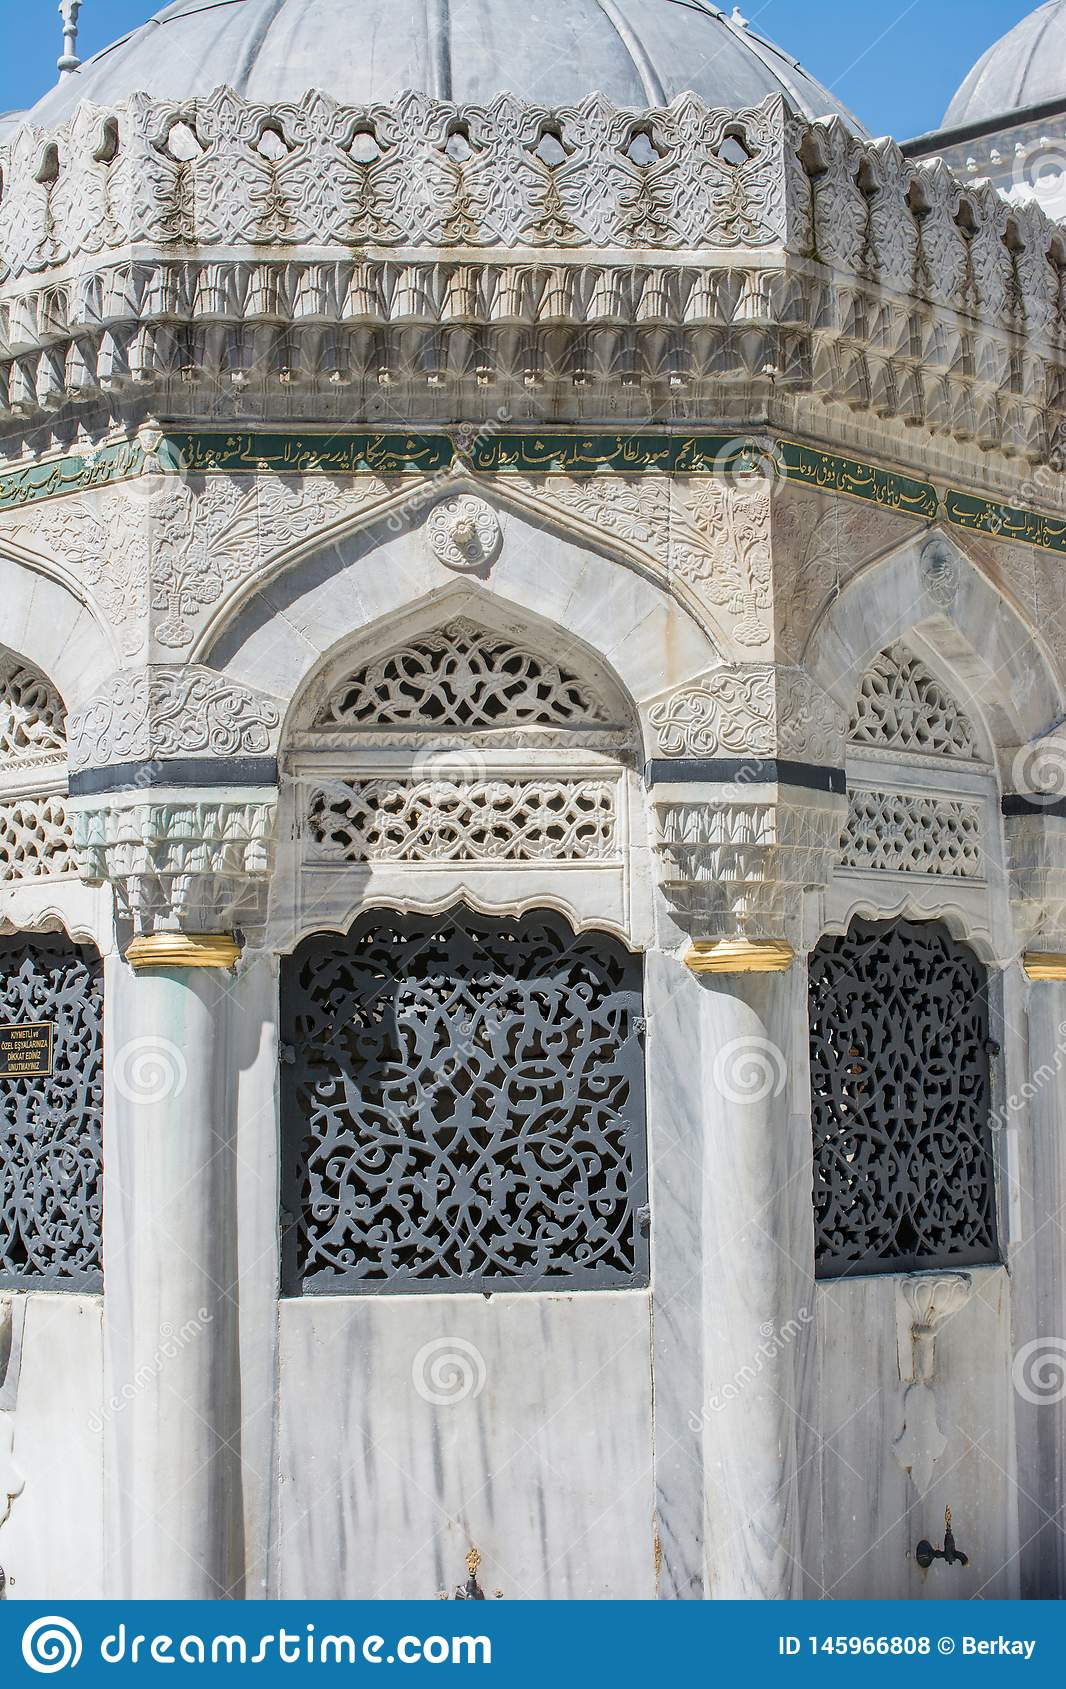 Fine example of ottoman Turkish architecture